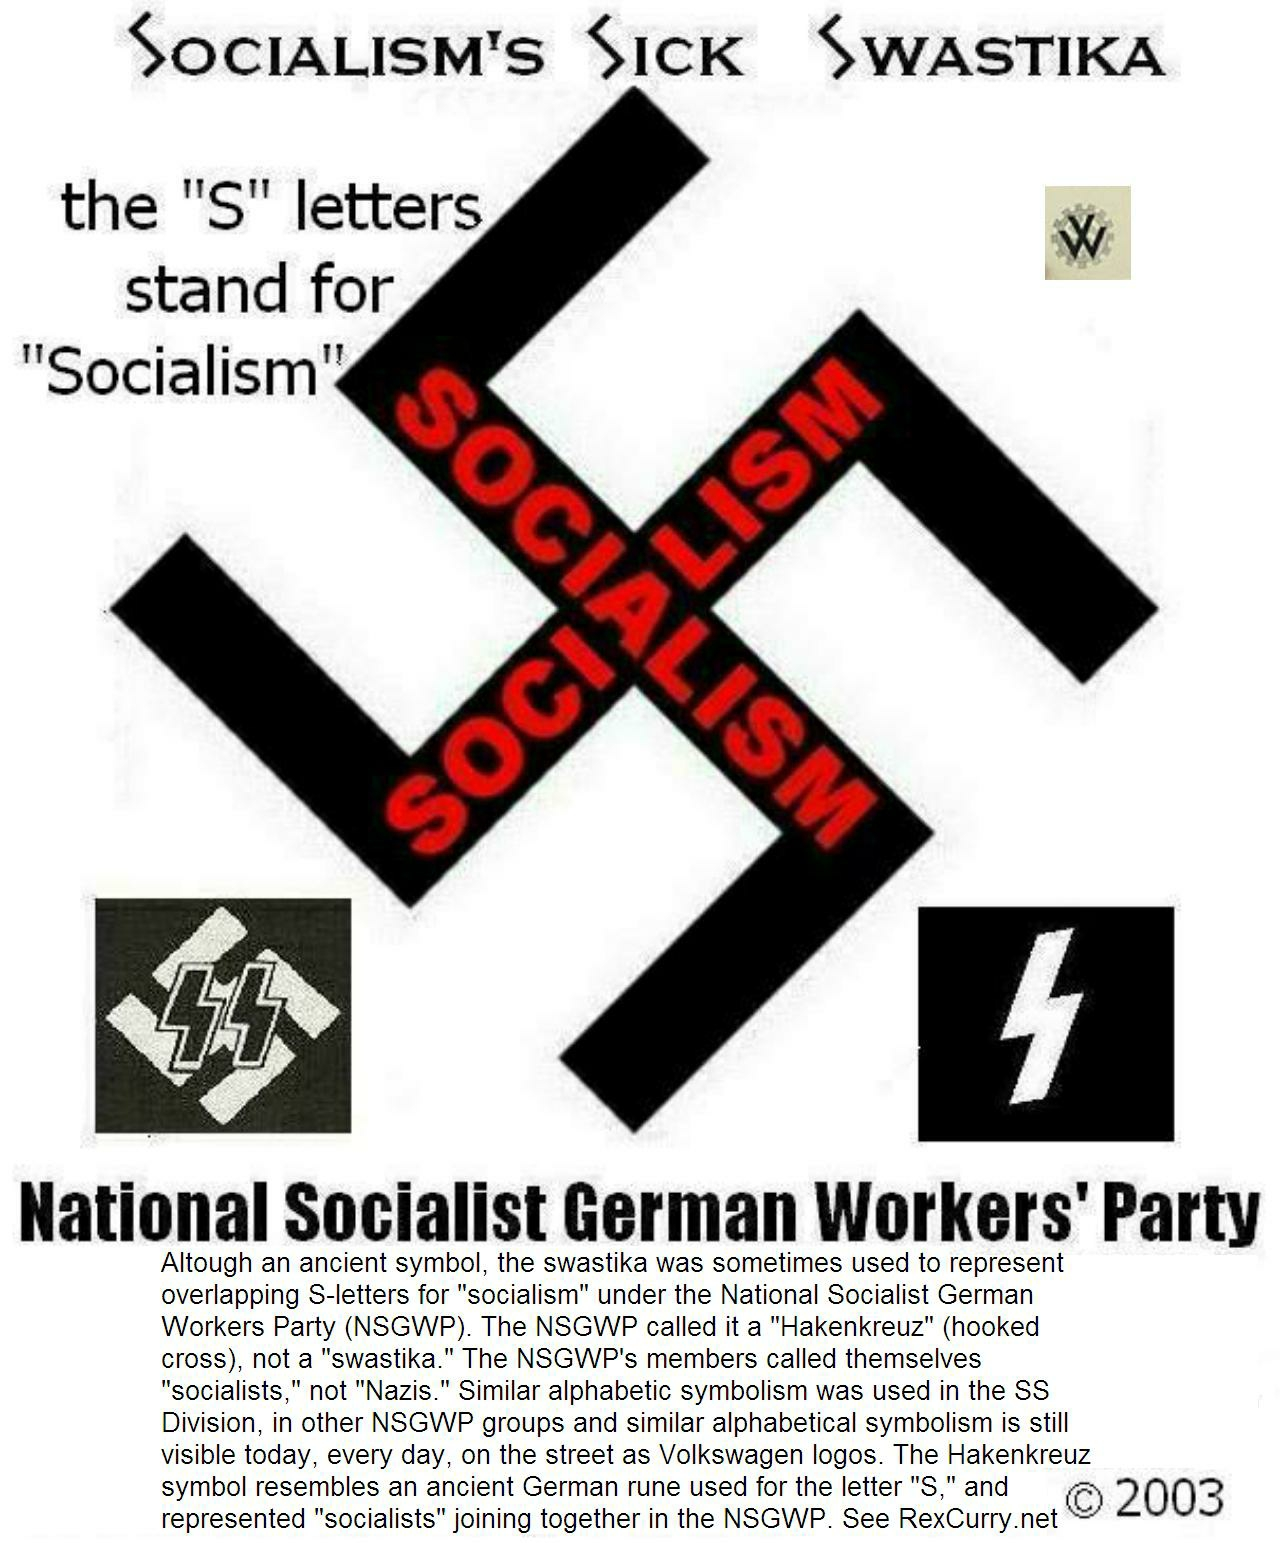 Swastikas from Adolf Hitler as S-letters for SOCIALISM symbols